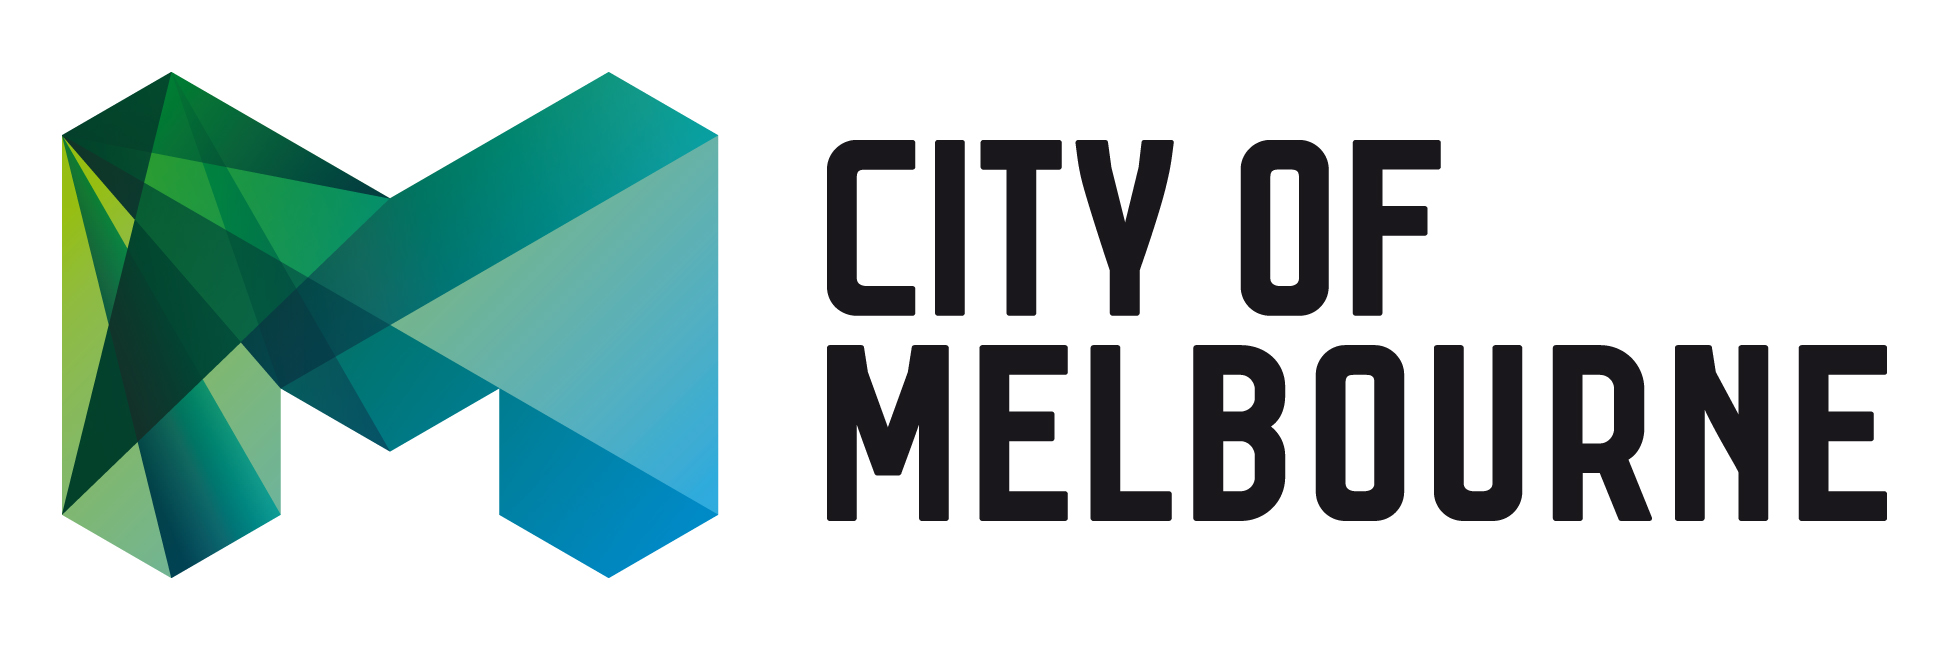 melbourne-city-logo.jpg